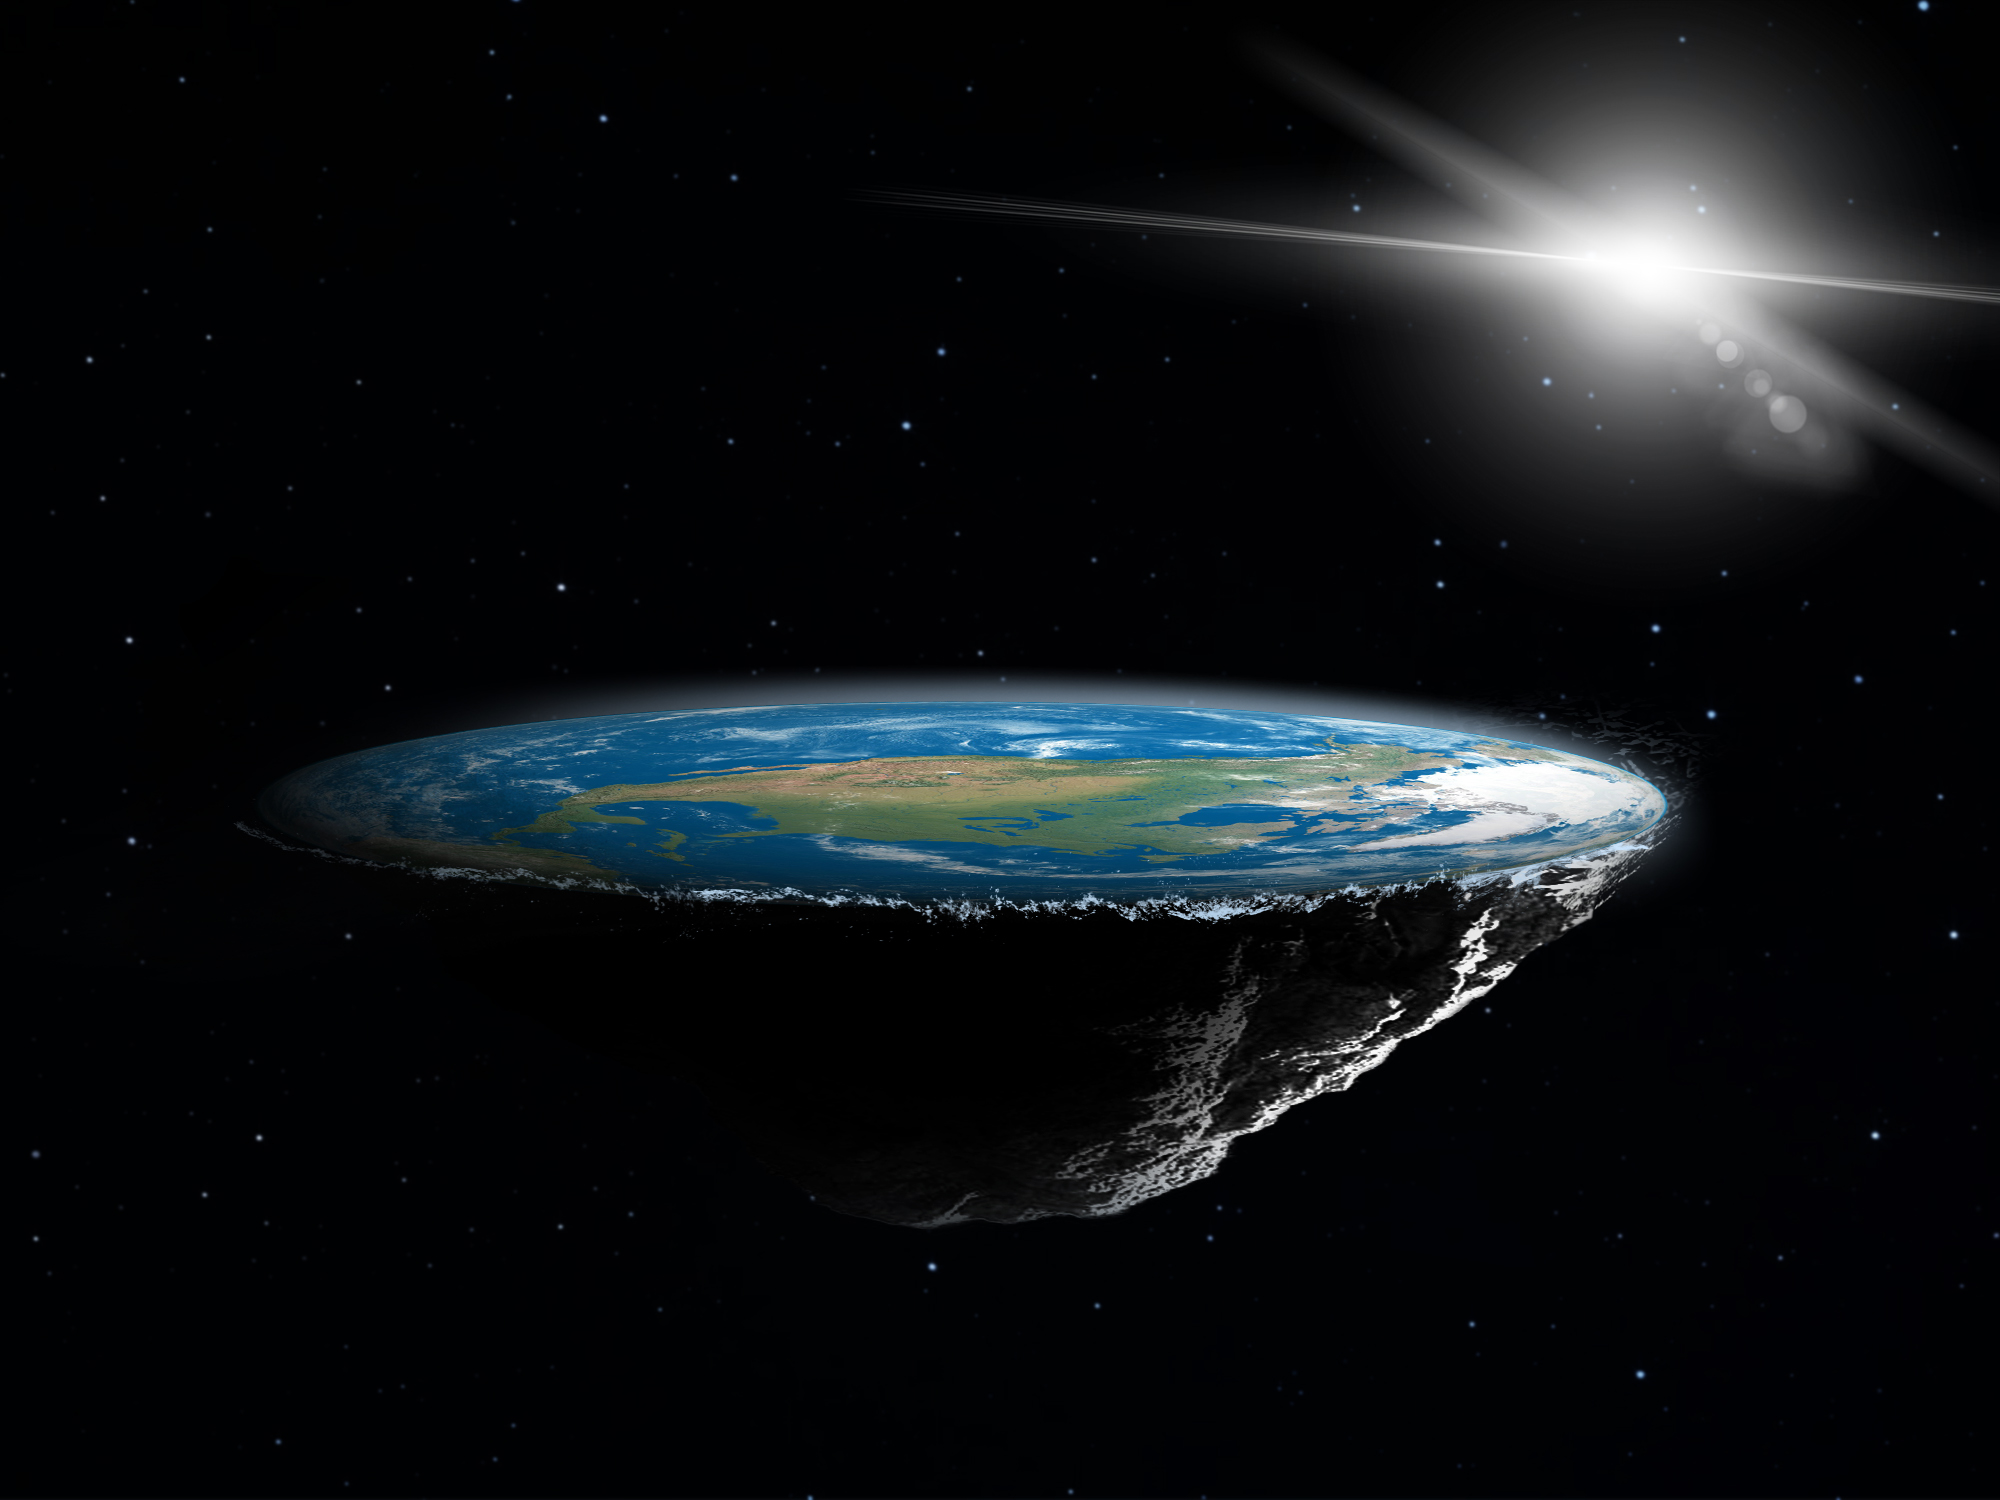 https://d.newsweek.com/en/full/1508883/flat-earth-soccor.jpg